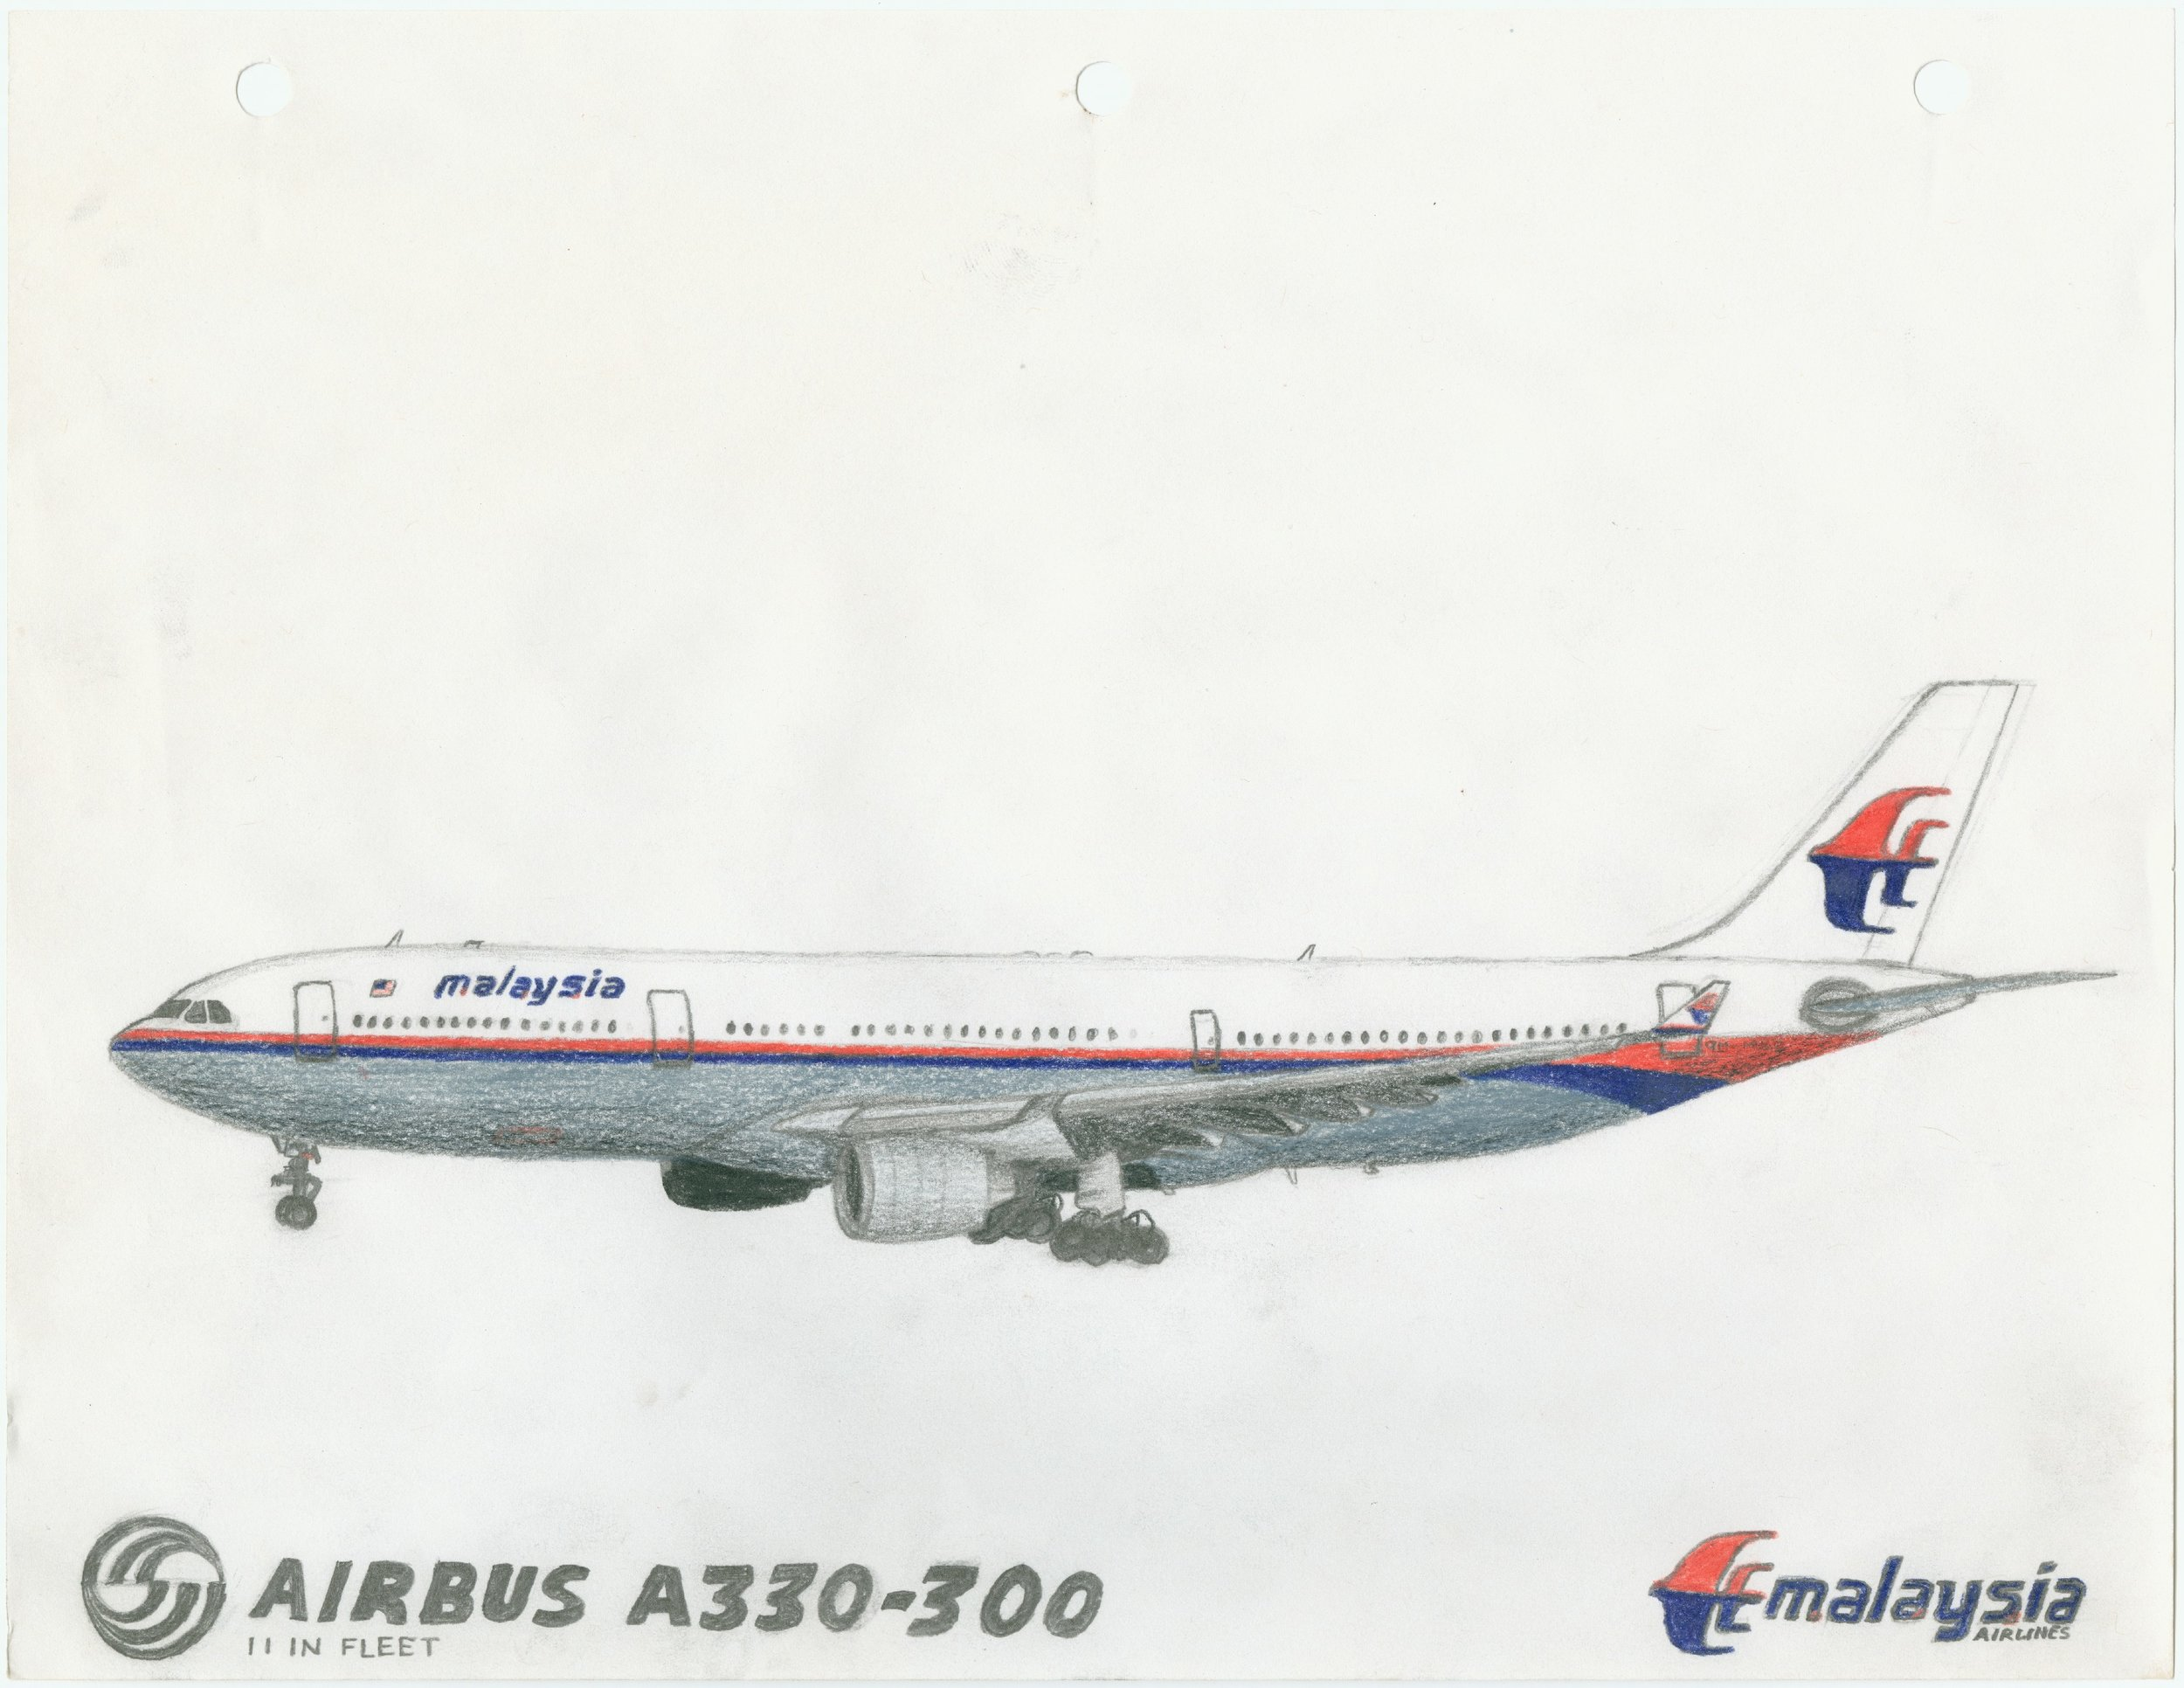 2007 - 006 - Malaysia Airlines planes.pdf0003.jpg